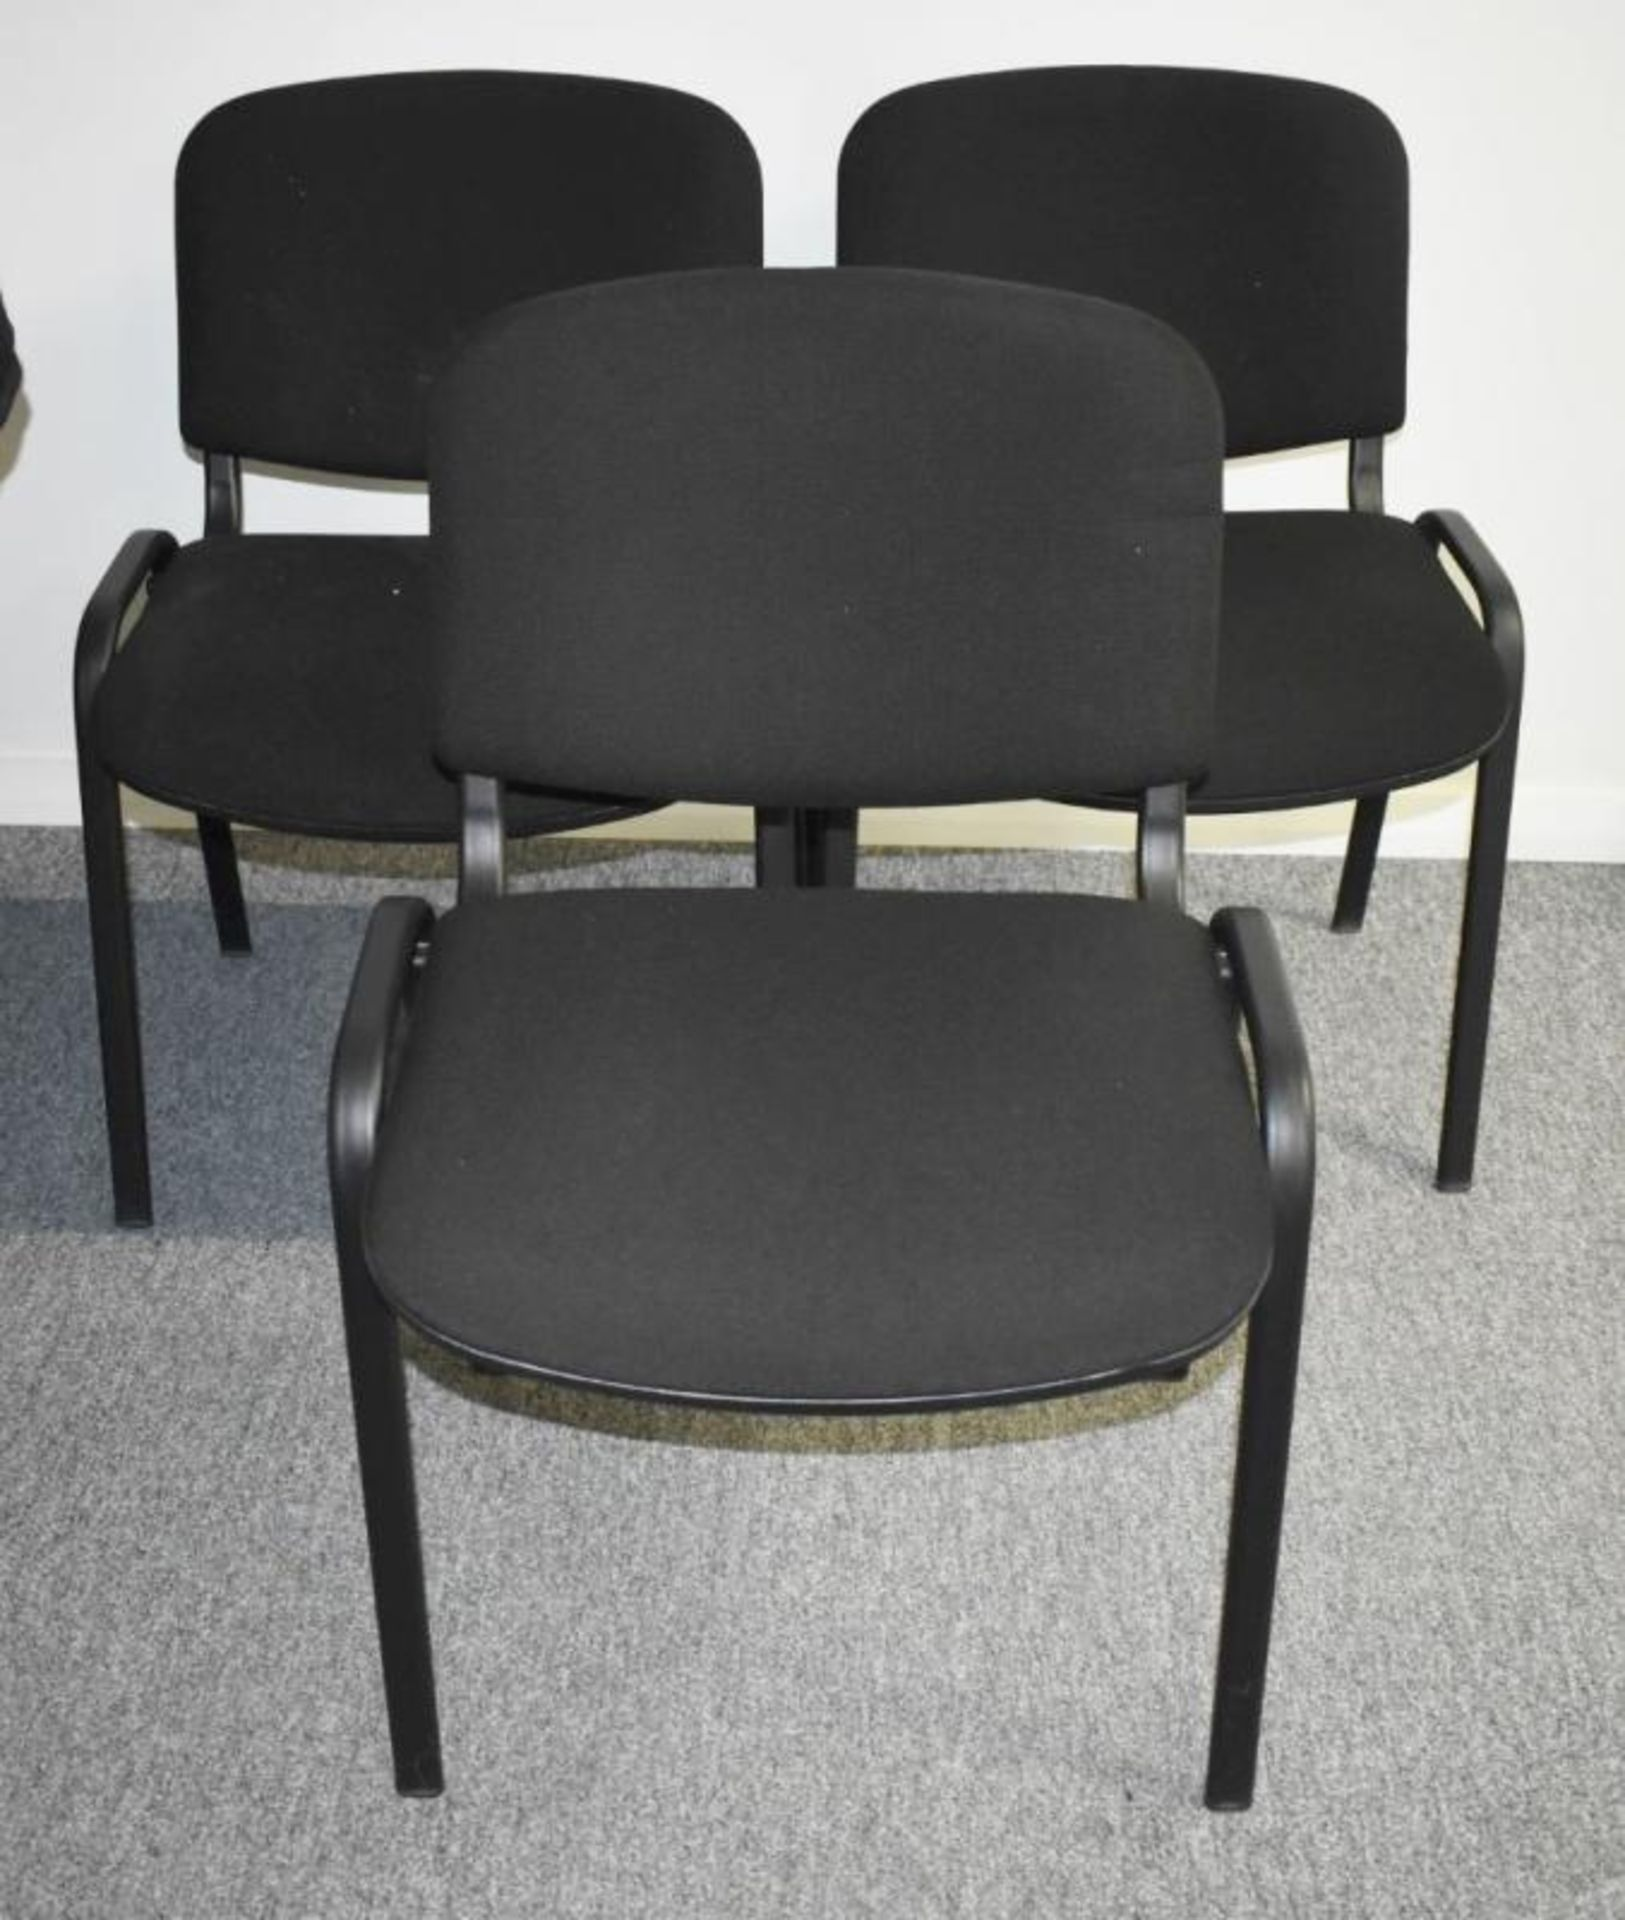 Lot 392 - 6 x Stackable Office Chairs Upholsted in Charcoal Grey Fabric - CL490 - Location: Putney, London,